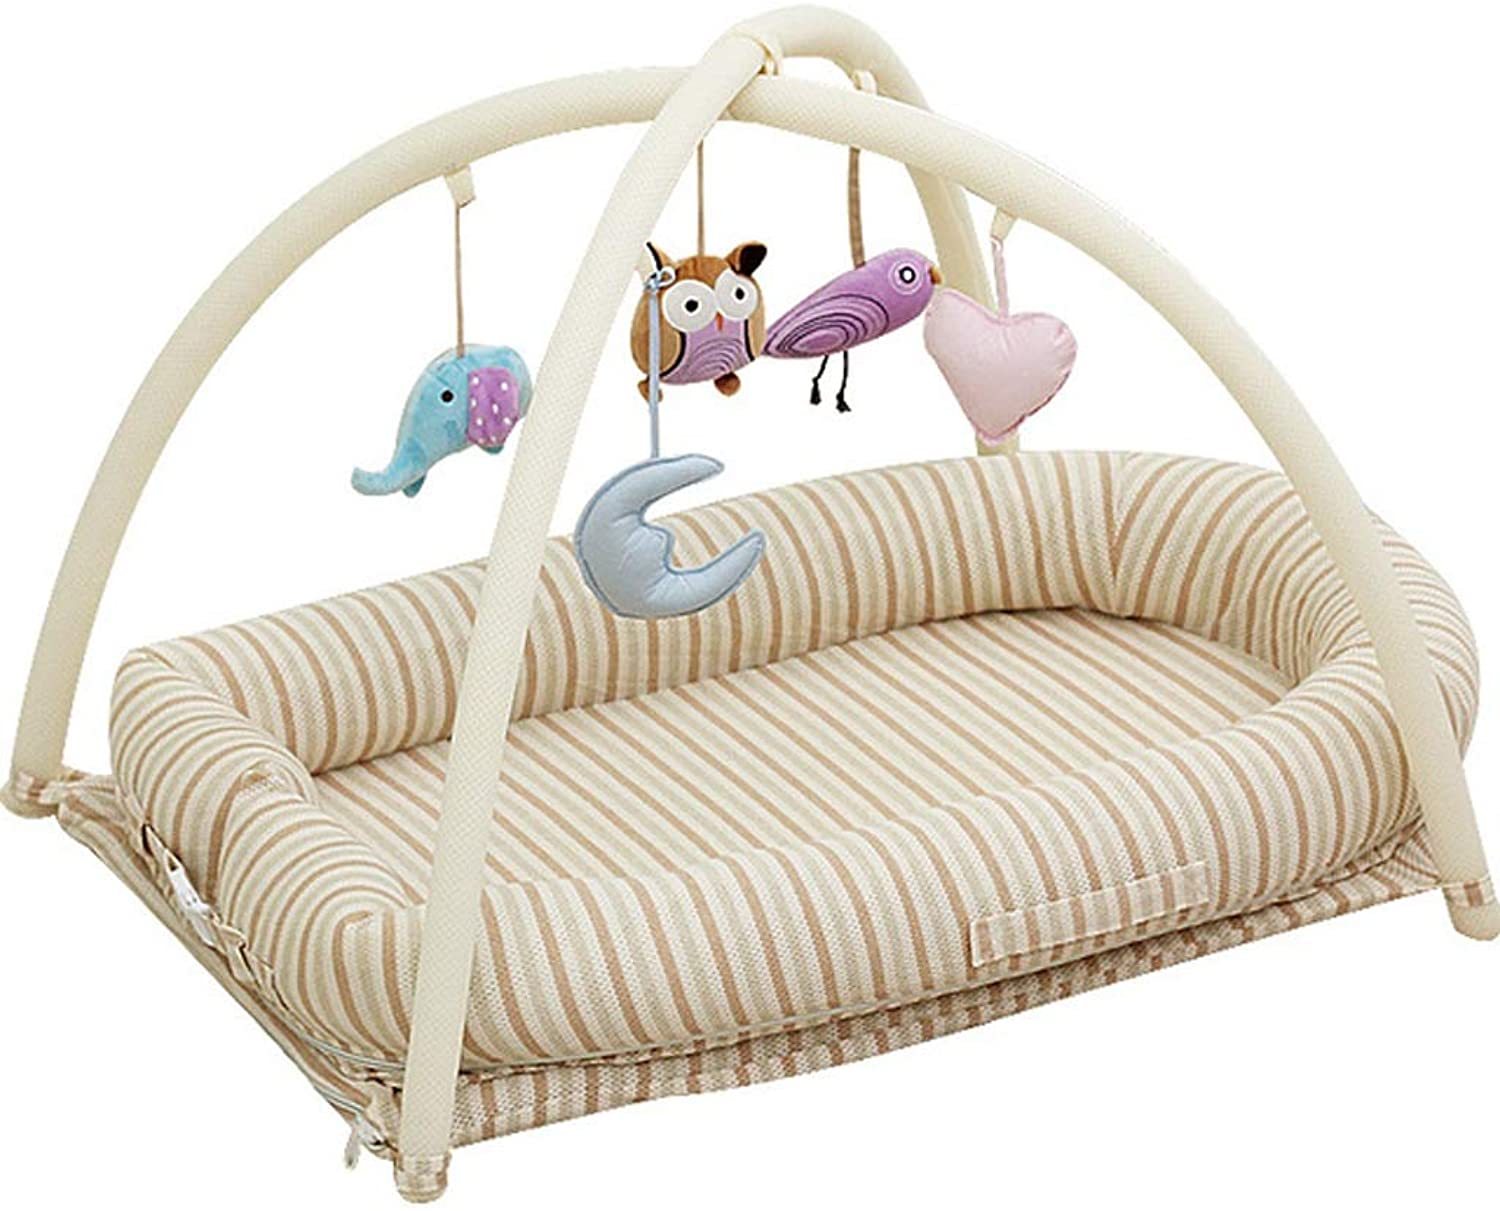 Crib Bed Portable Sleepy Multi-Function Natural color Cotton Bed Baby Newborn Cradle Bed Game Bed